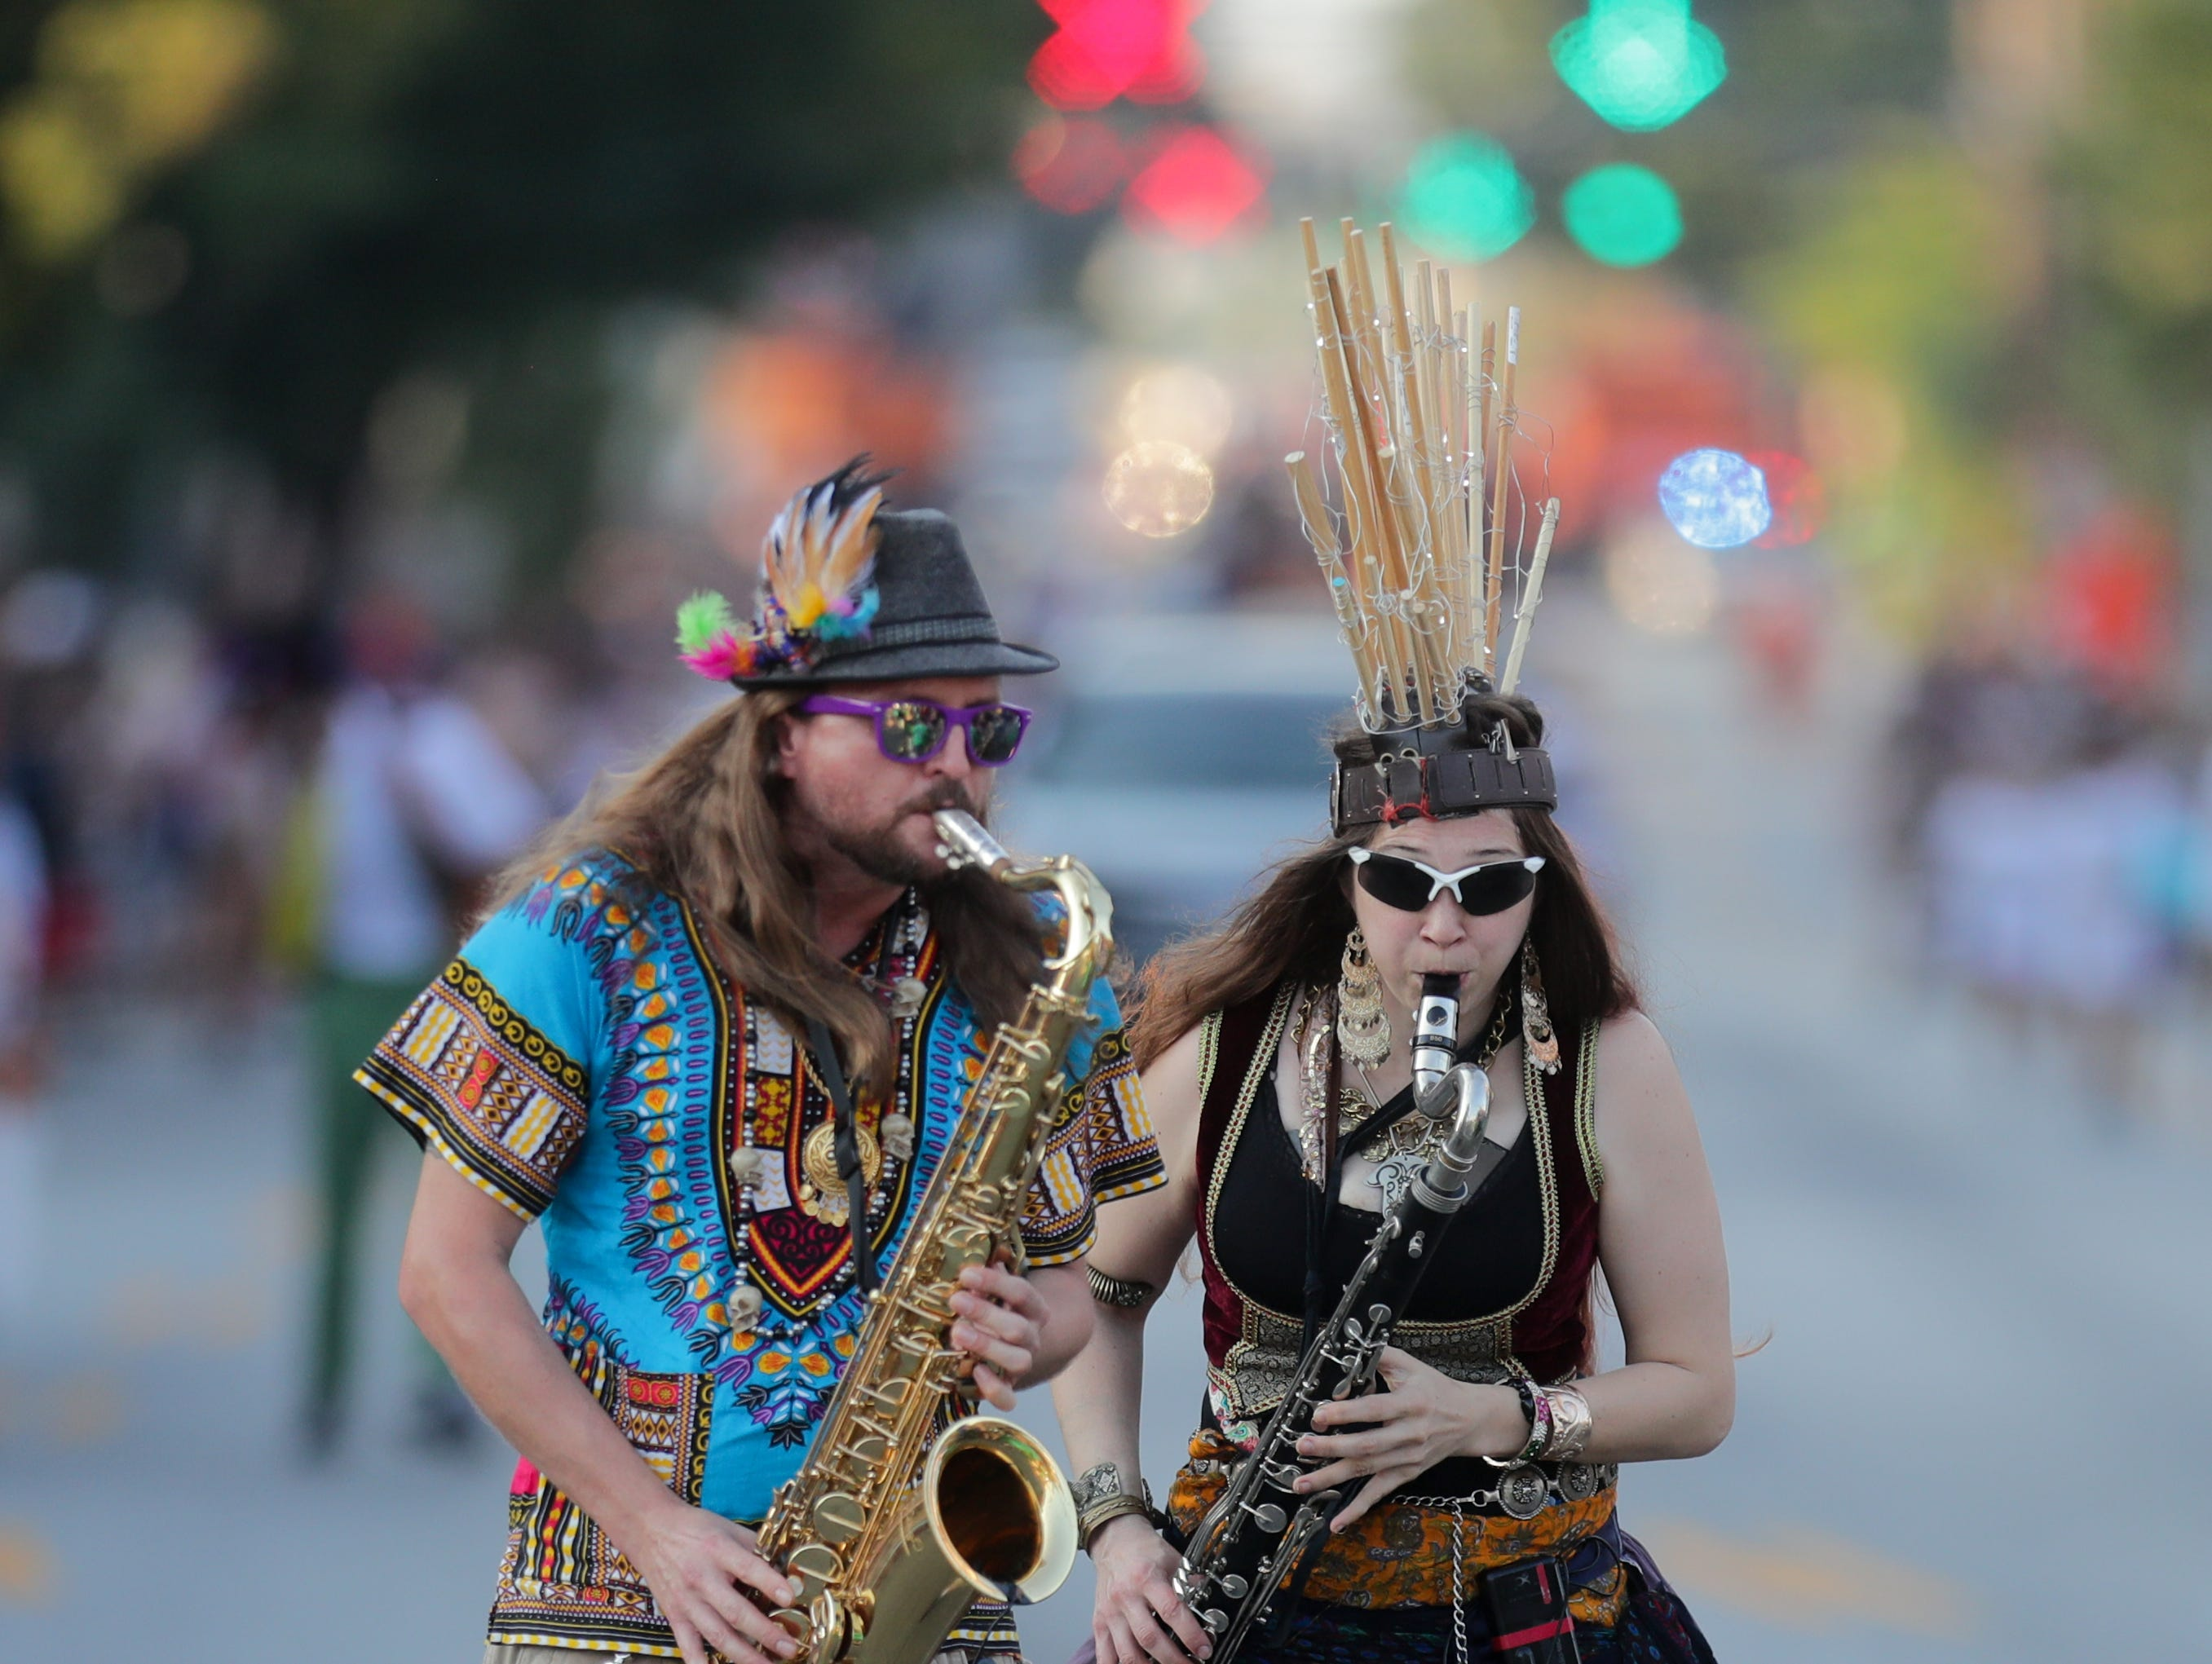 Scenes from the 2018 Halloween Parade & Festival. Oct. 6, 2018